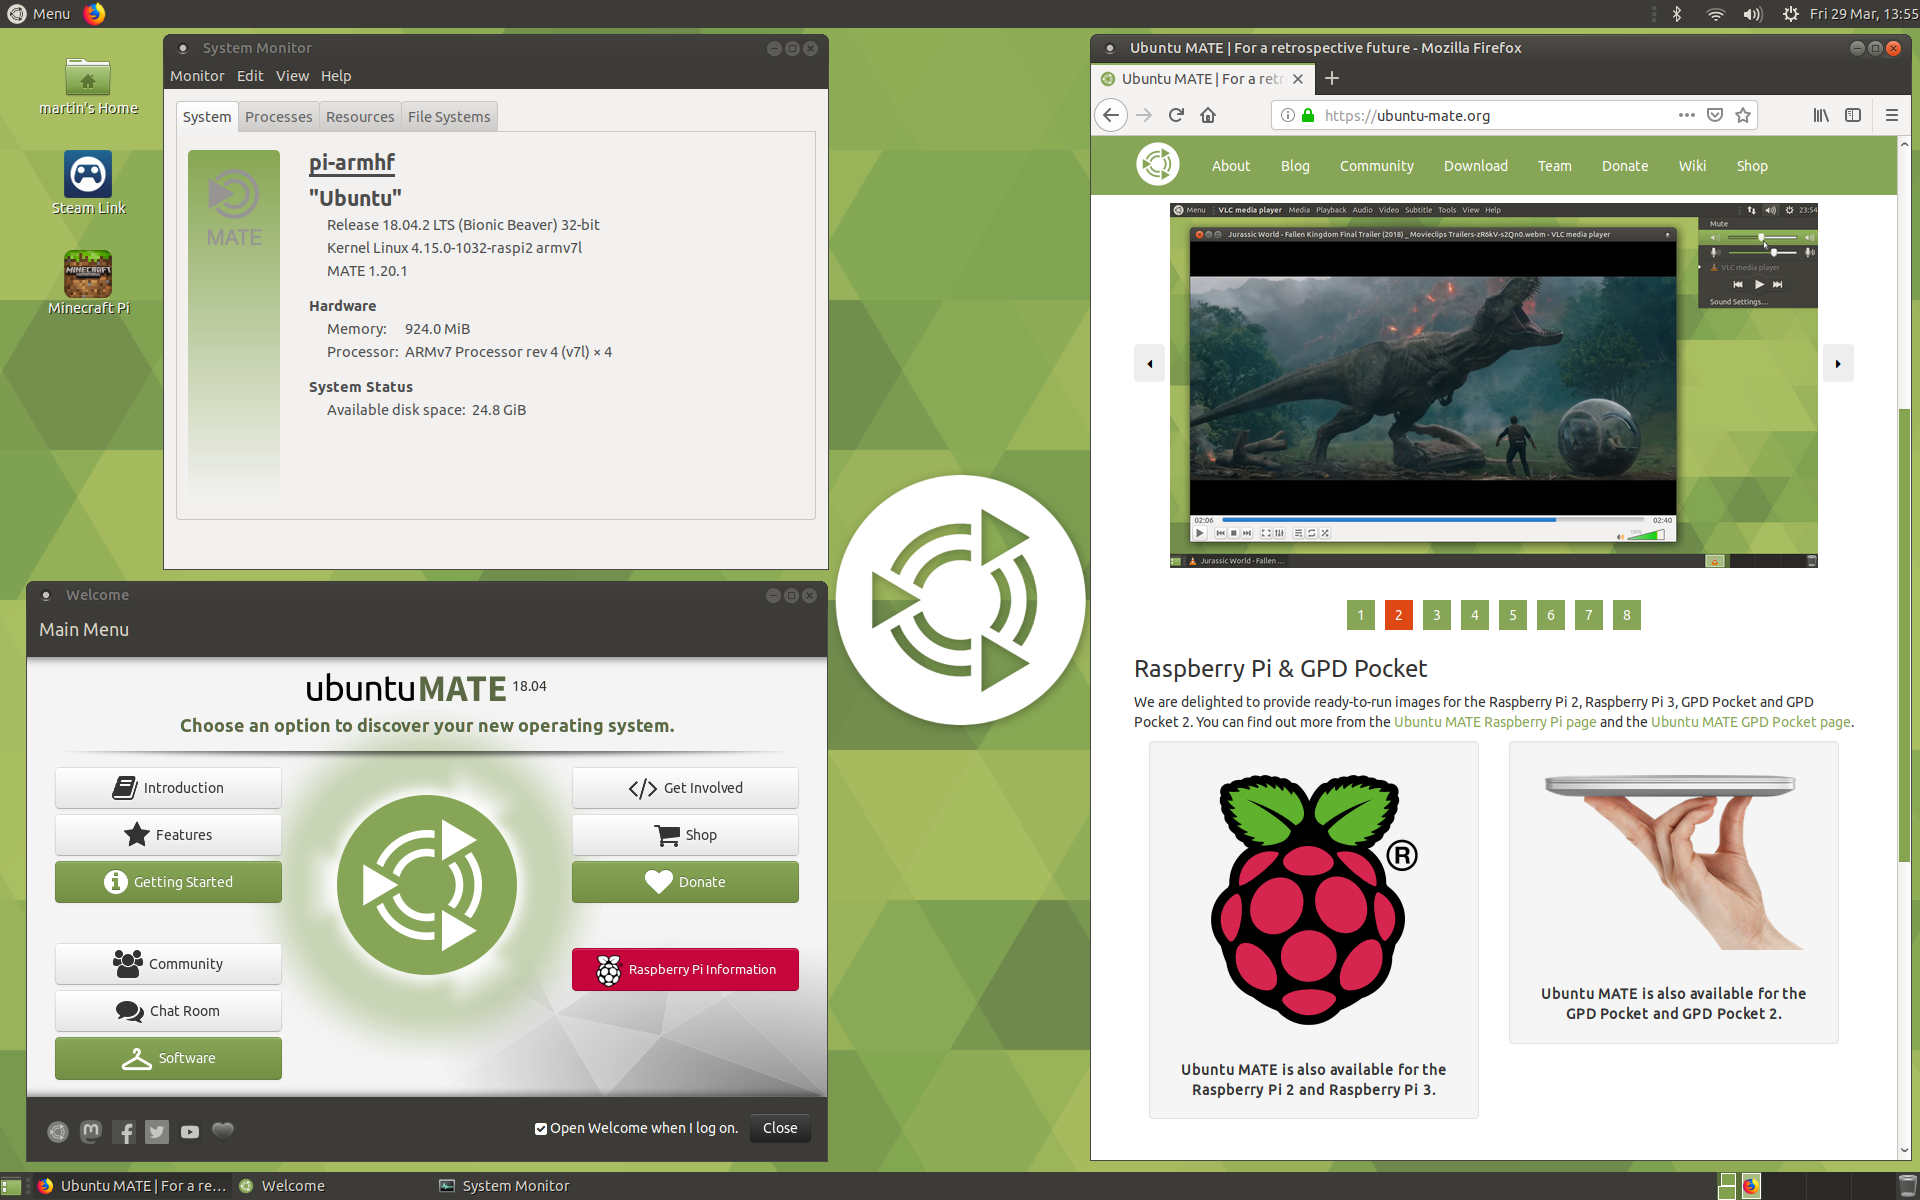 Ubuntu MATE 18 04 Beta 1 for the Raspberry Pi is out